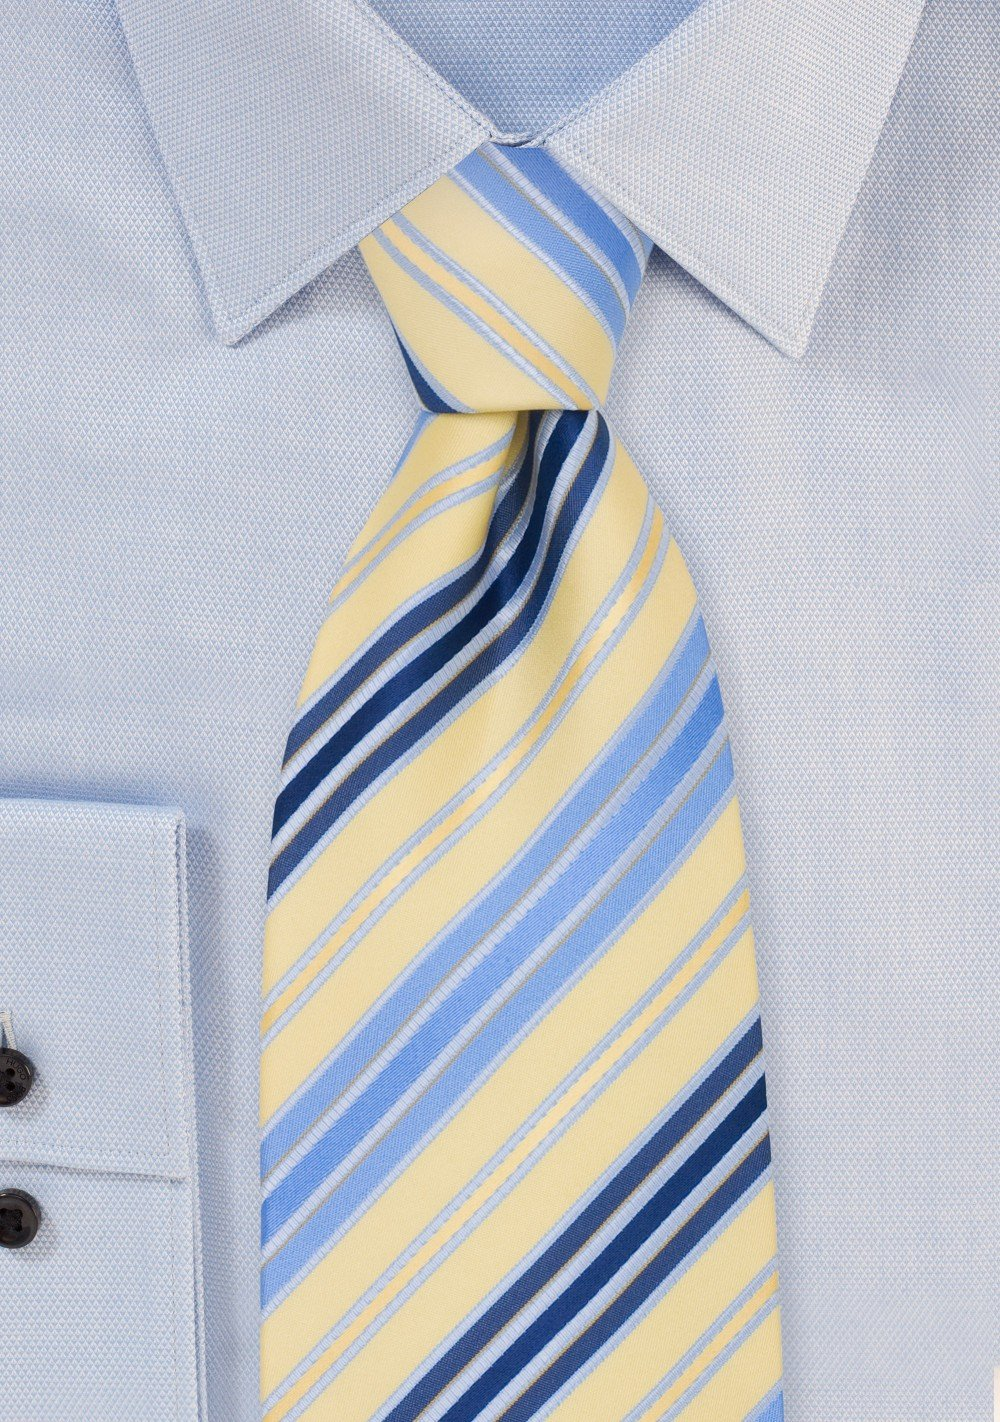 Striped Mens Ties - Navy, Light Blue, and Yellow Necktie